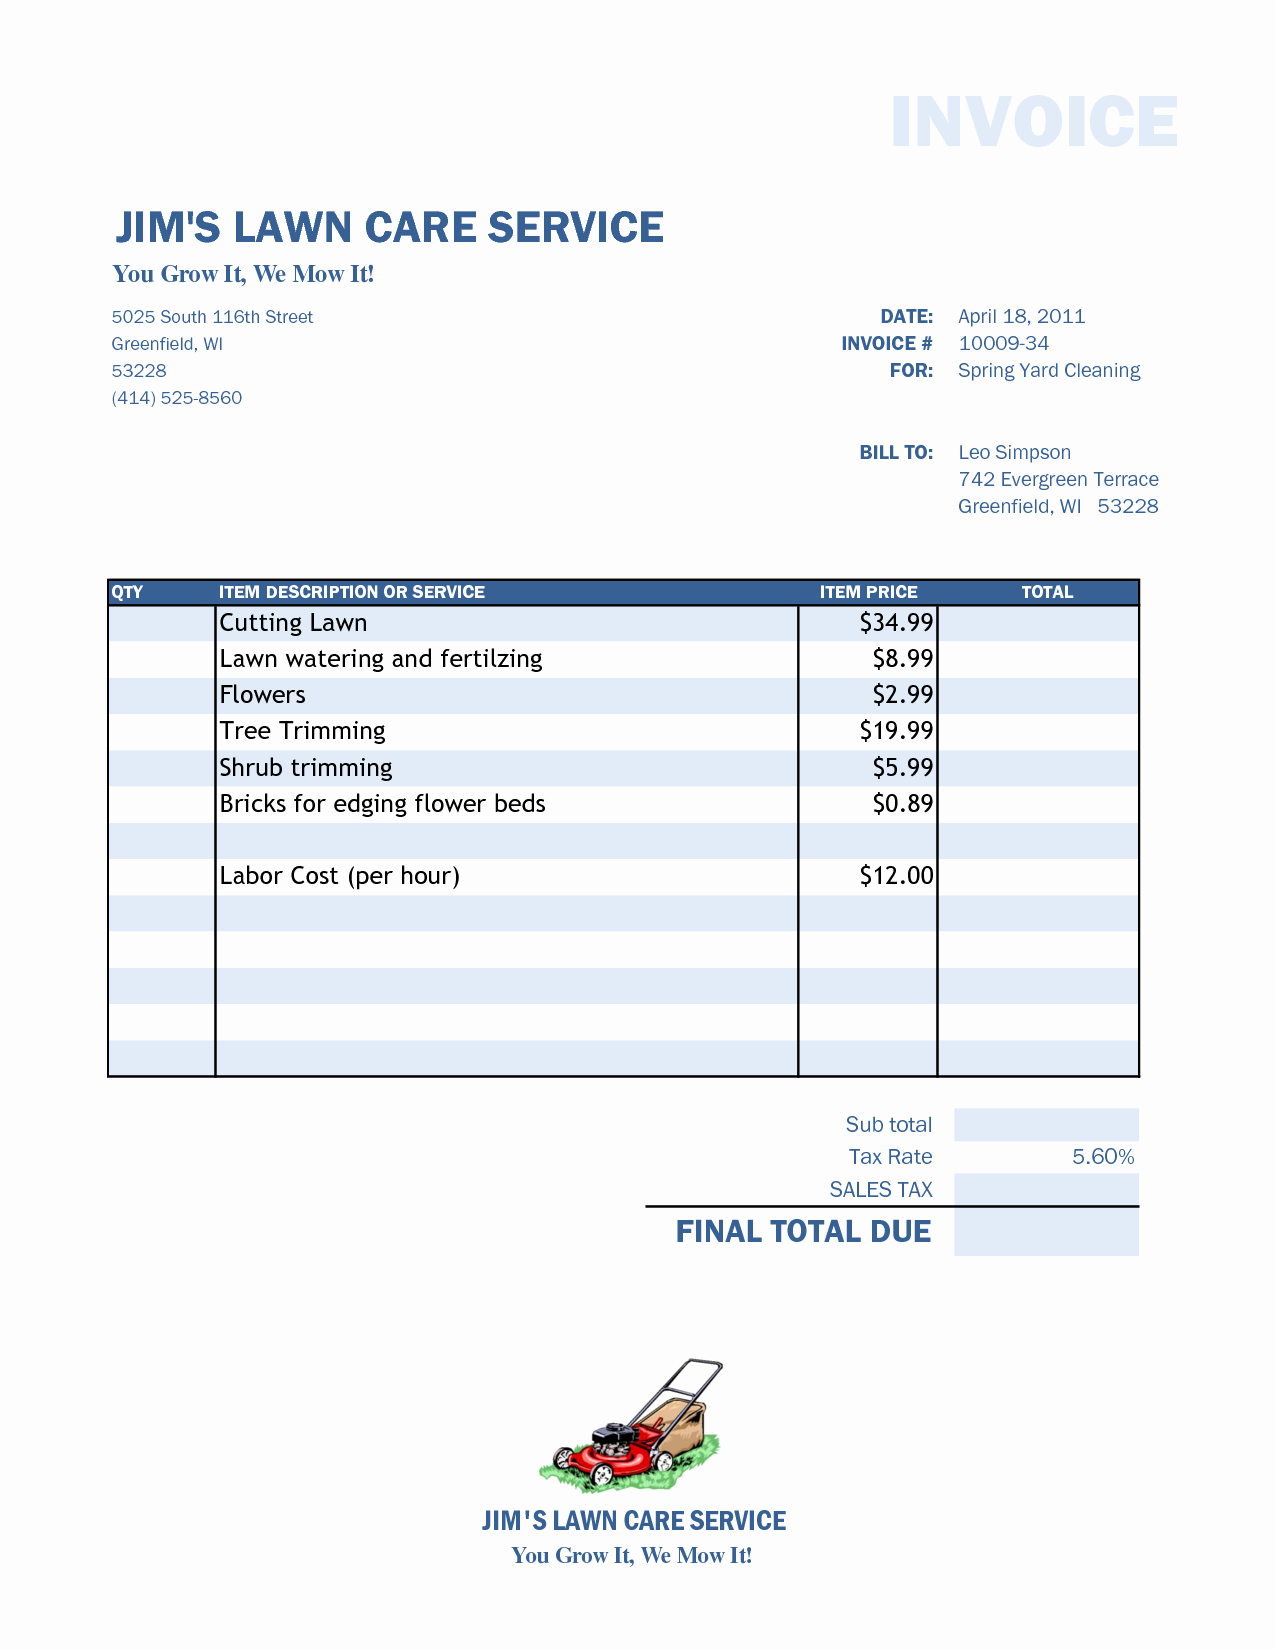 Lawn Service Invoice Template Excel New Lawn Care Invoice Template Spreadsheet Templates for